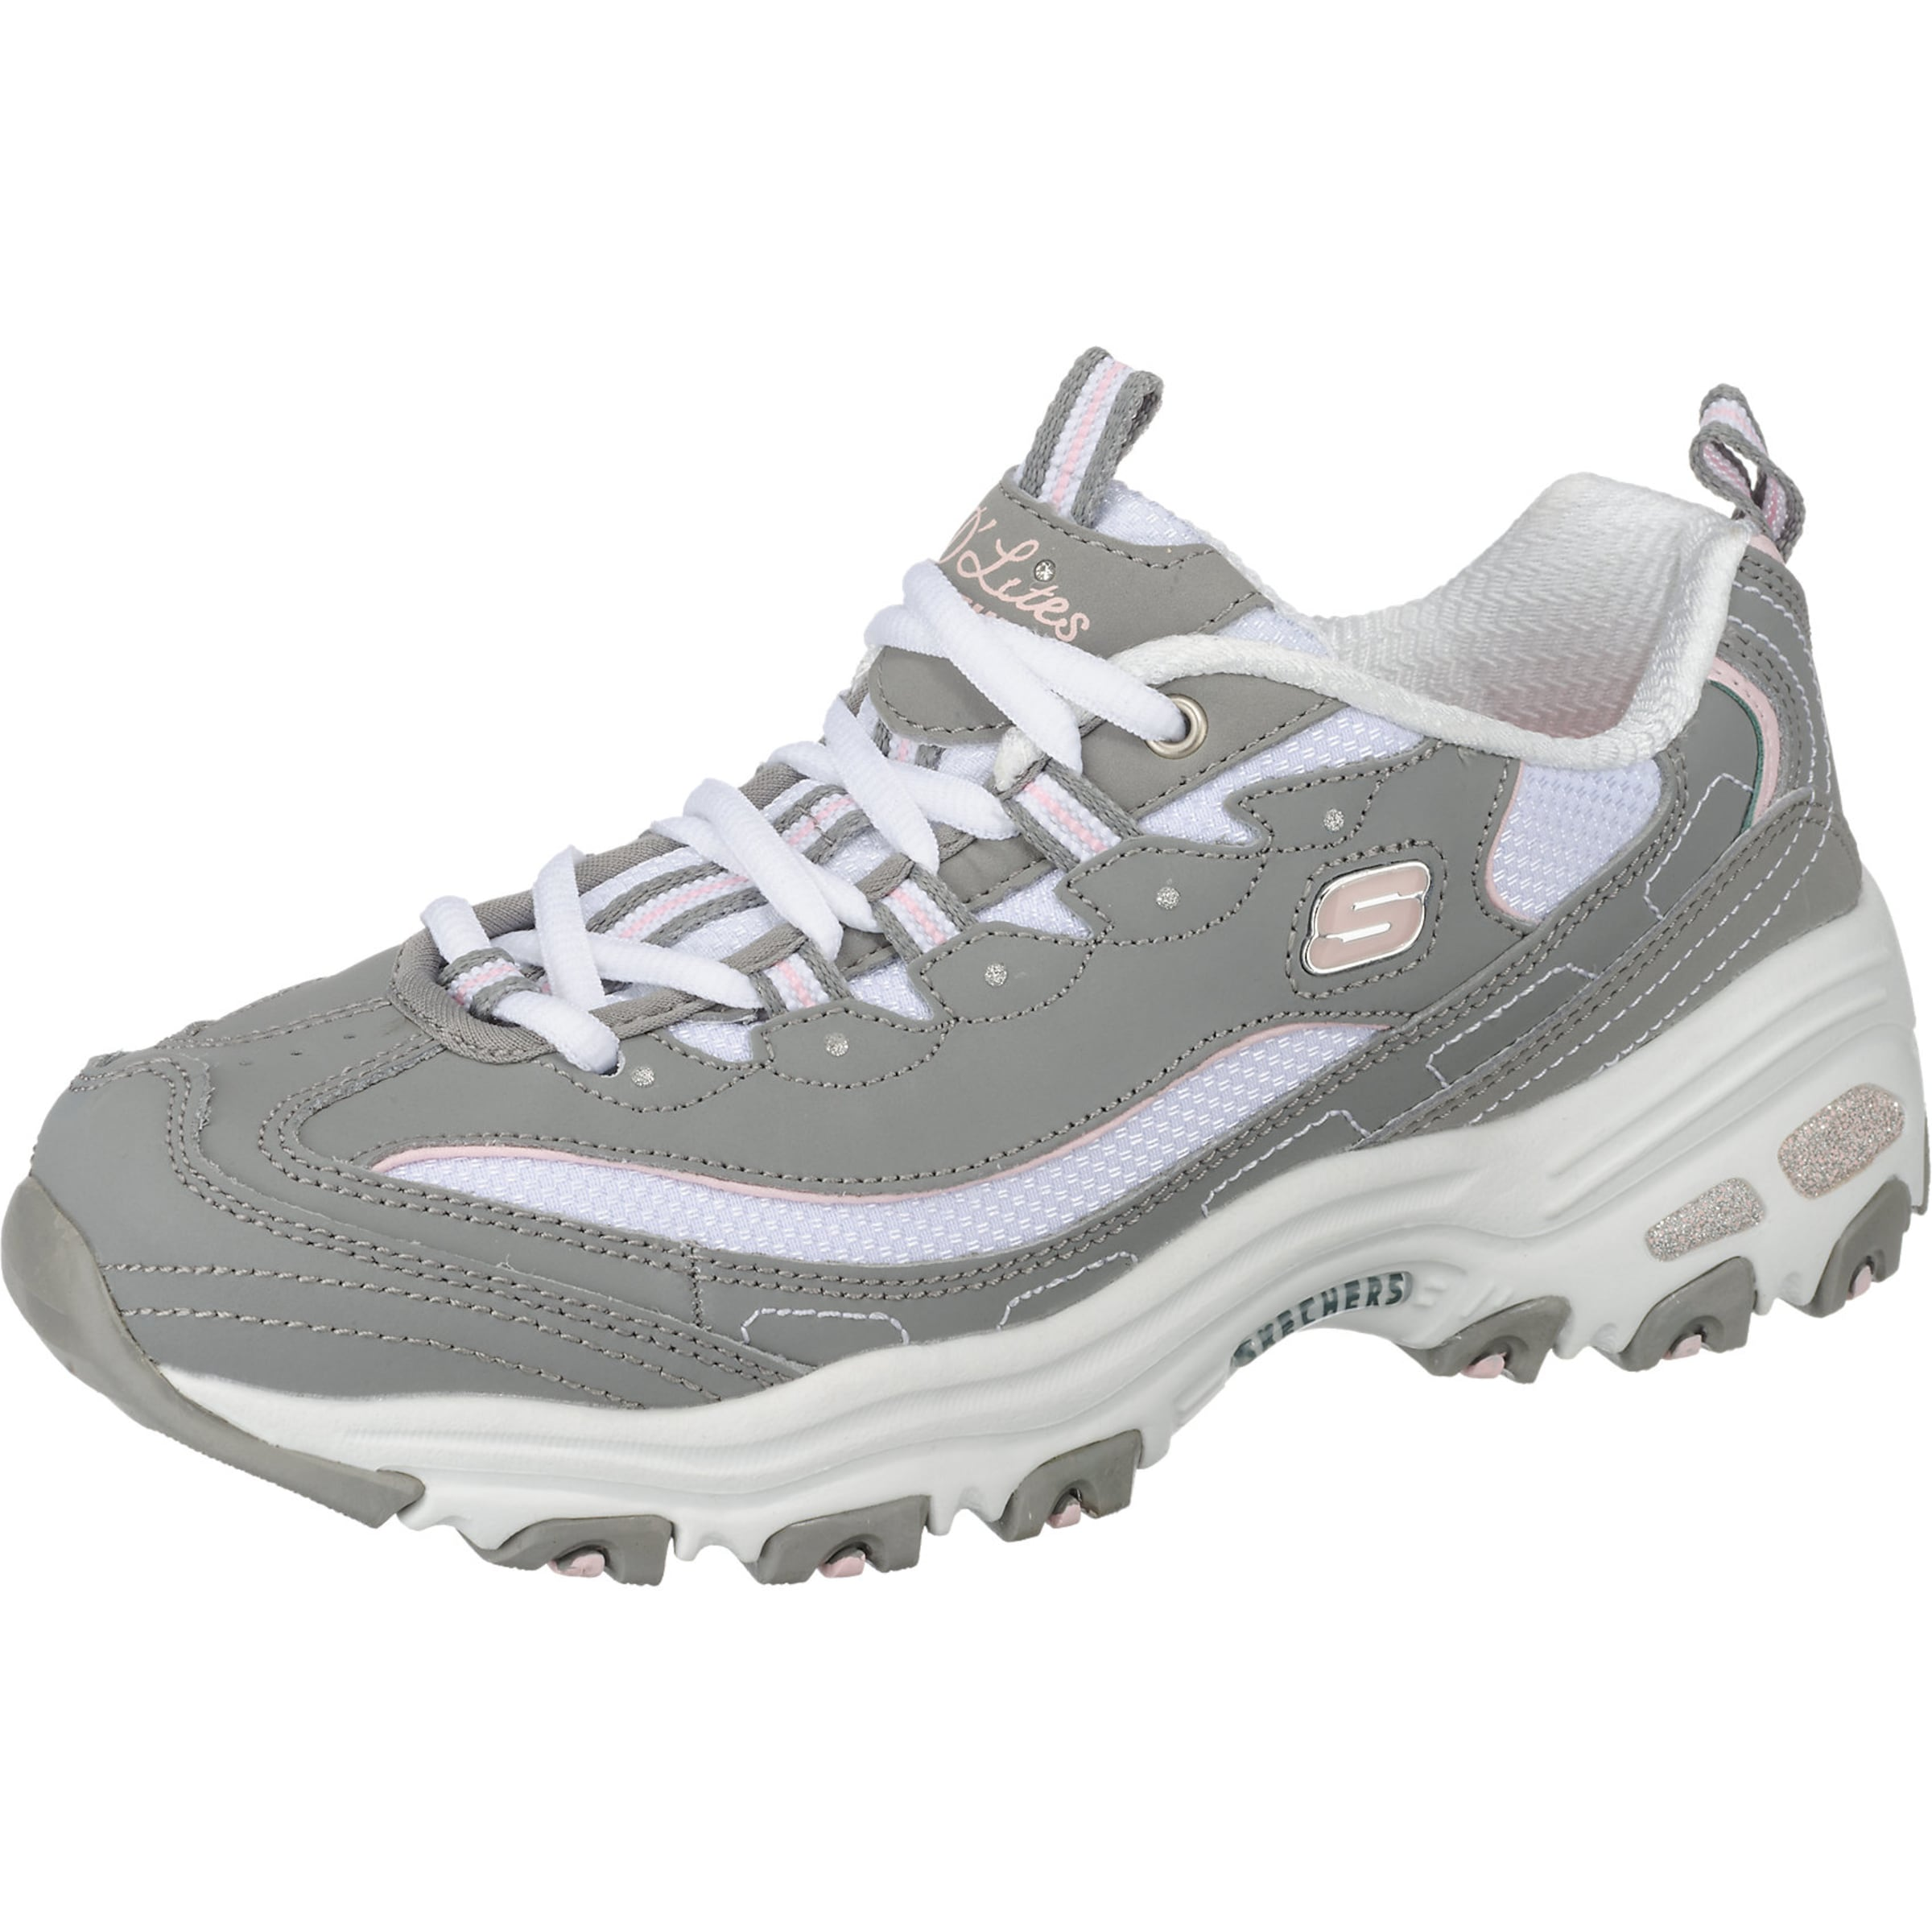 Fan' En Skechers Biggest GrisBlanc 'd'lites Baskets Basses 34jLqR5A